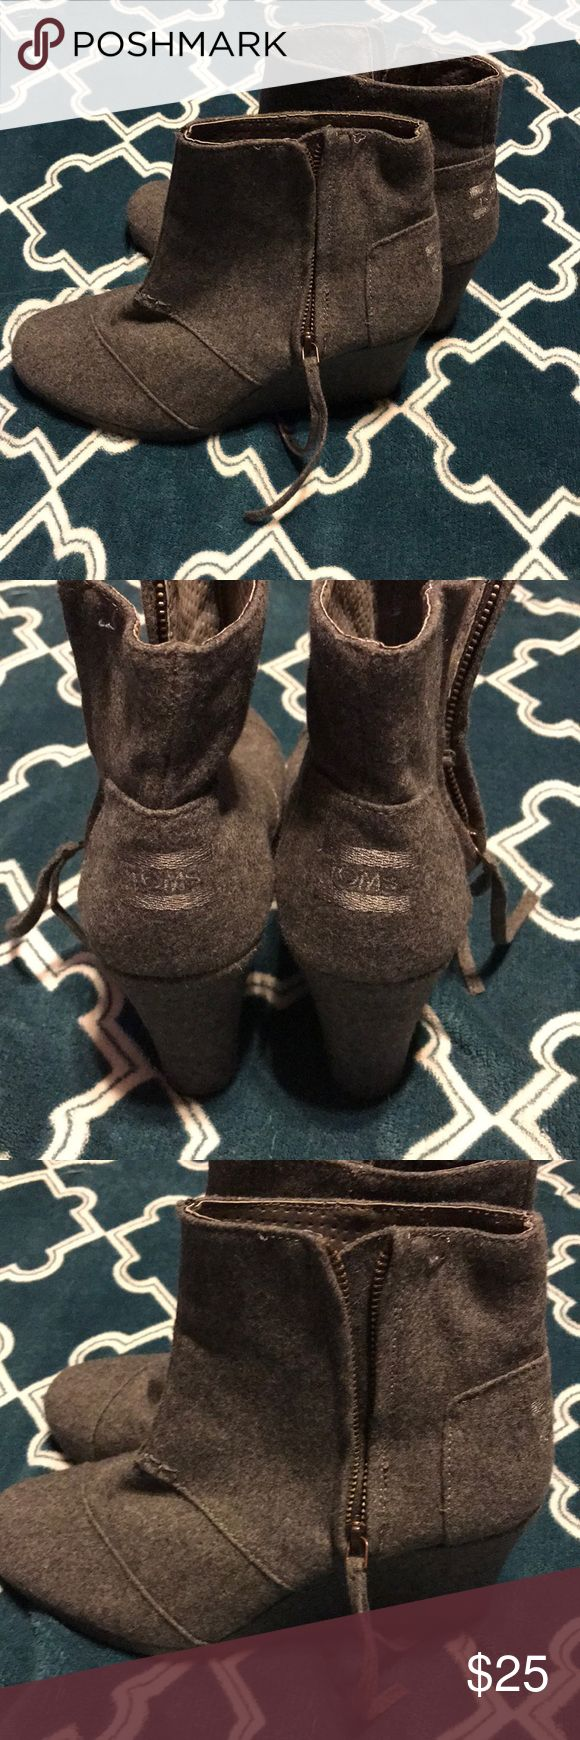 Women's toms wedges grey Women's size 8 grey wedges great condition zipper in side very clean Toms Shoes Wedges